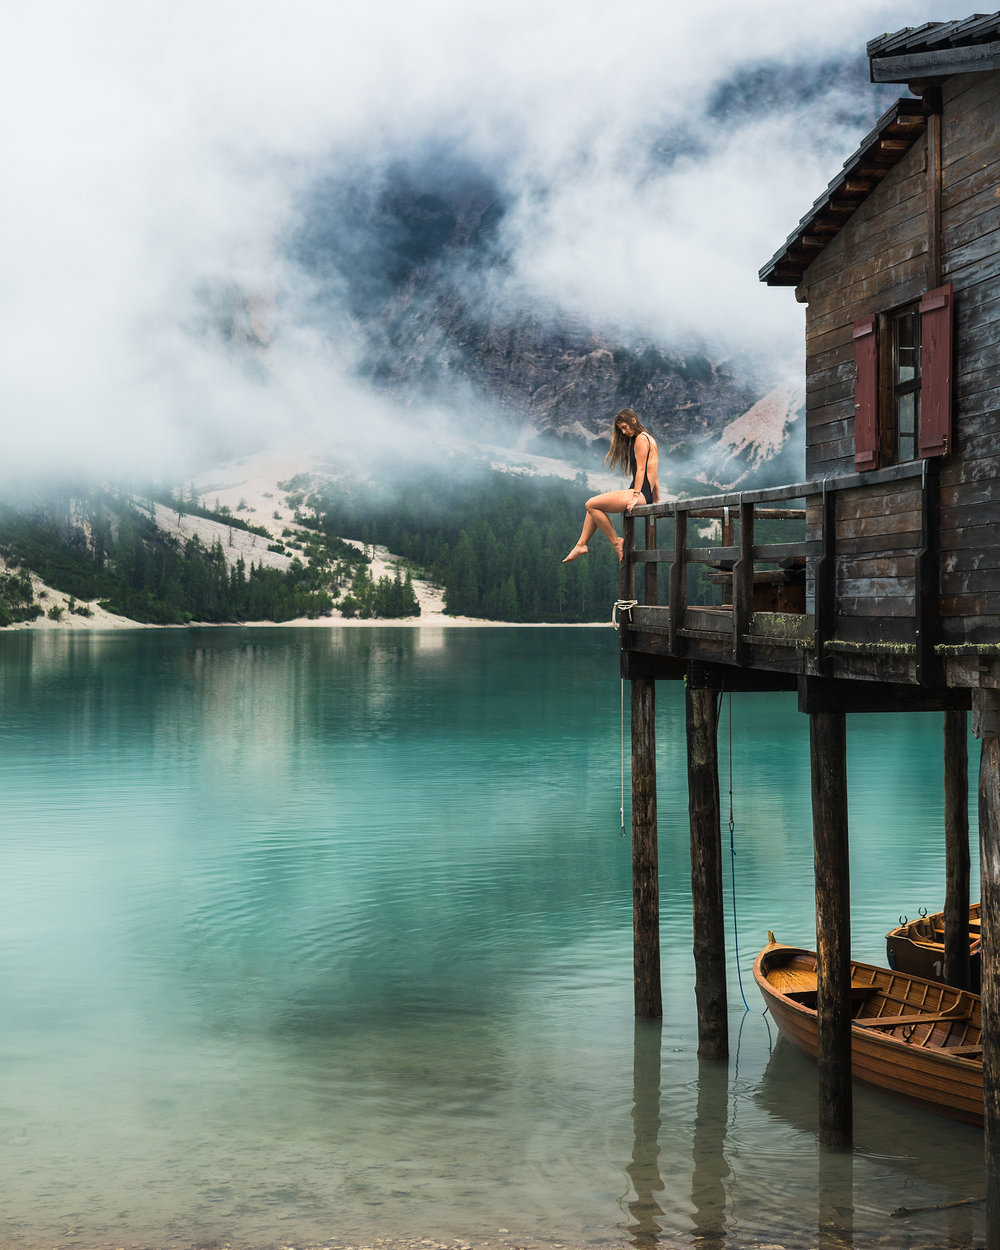 Pragser-Wildsee-in-Italy-with-Andrea-by-Michael-Matti.jpg